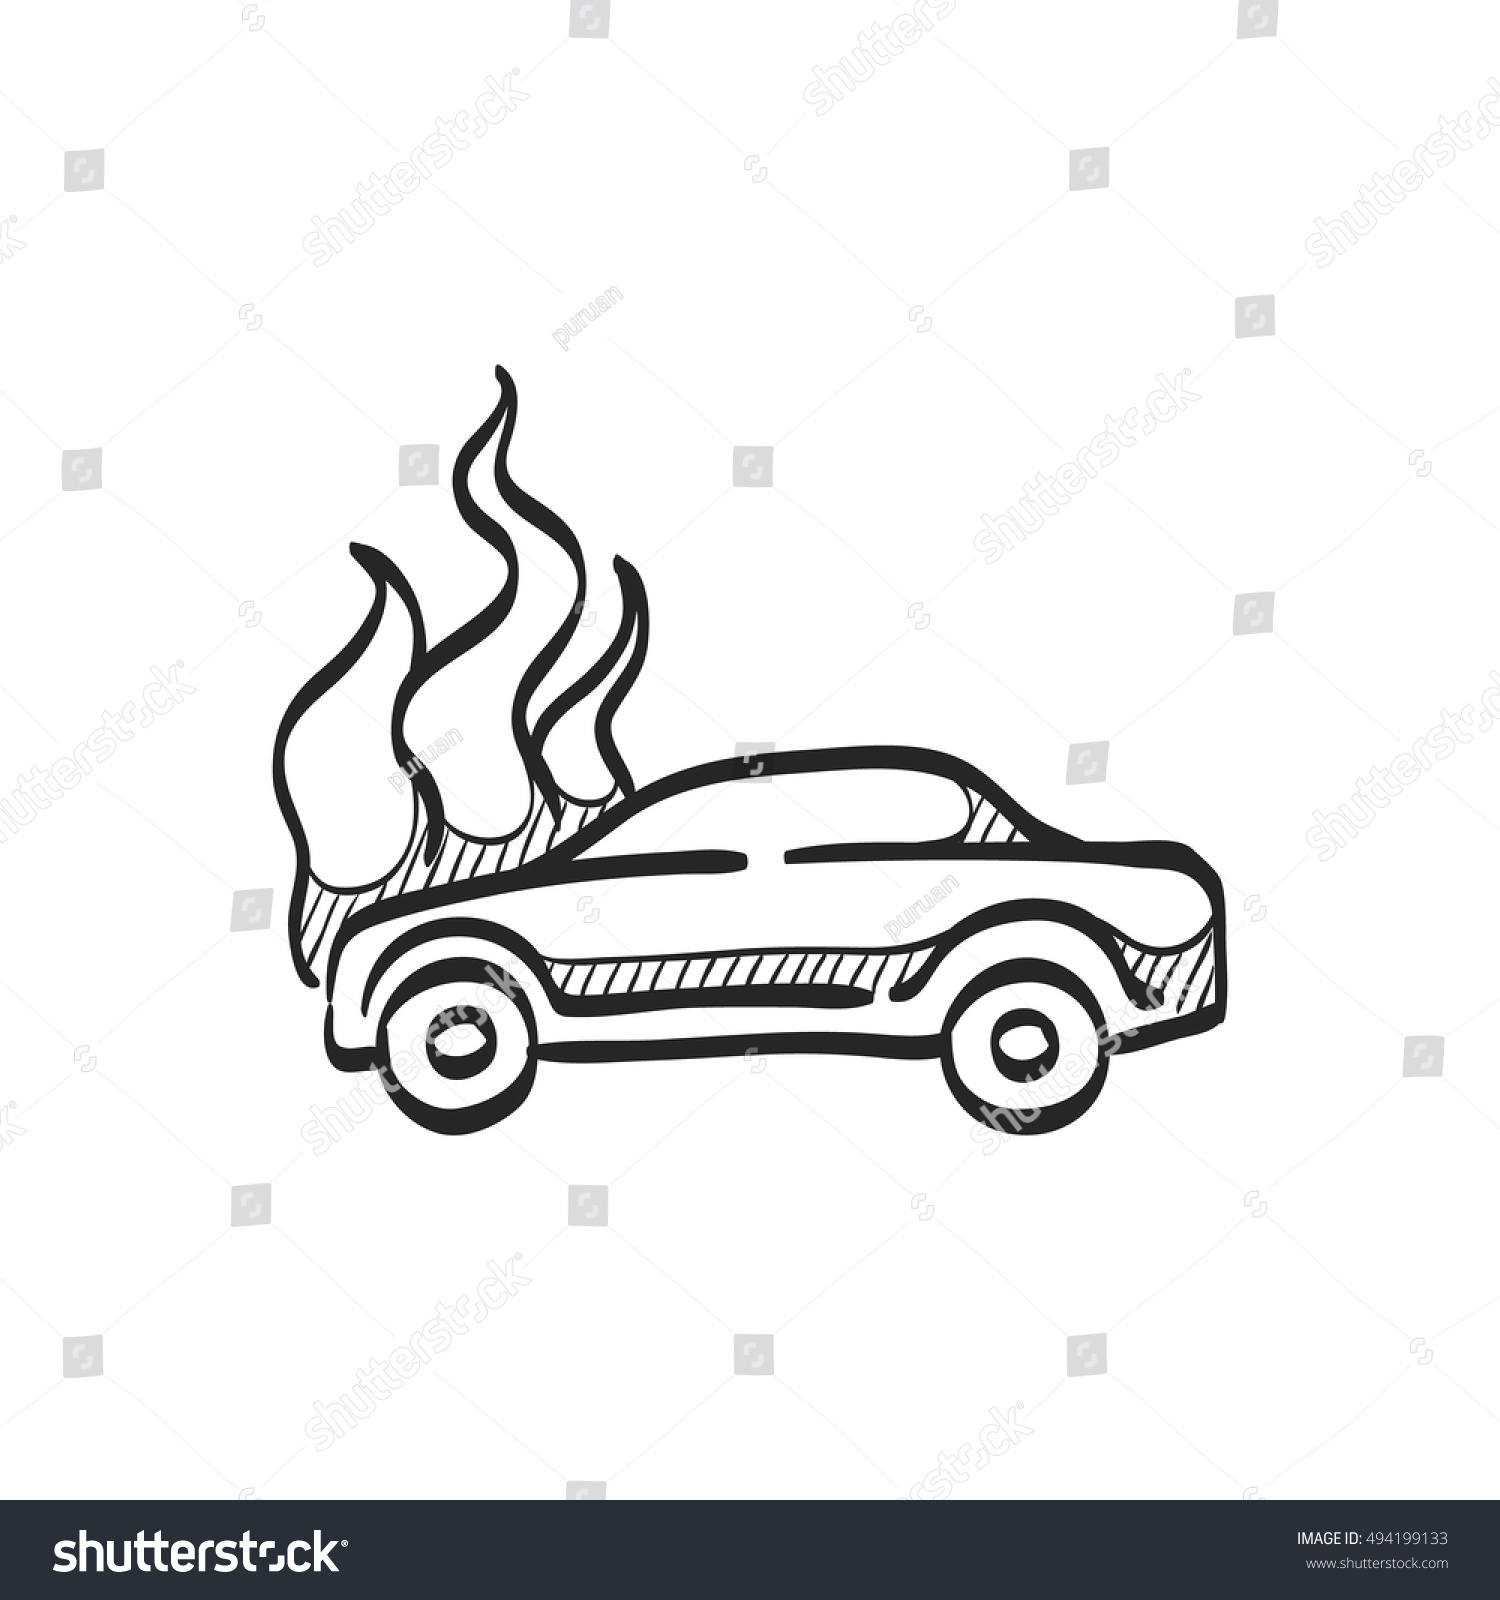 Car On Fire Icon Doodle Sketch Stock Vector 494199133 - Shutterstock